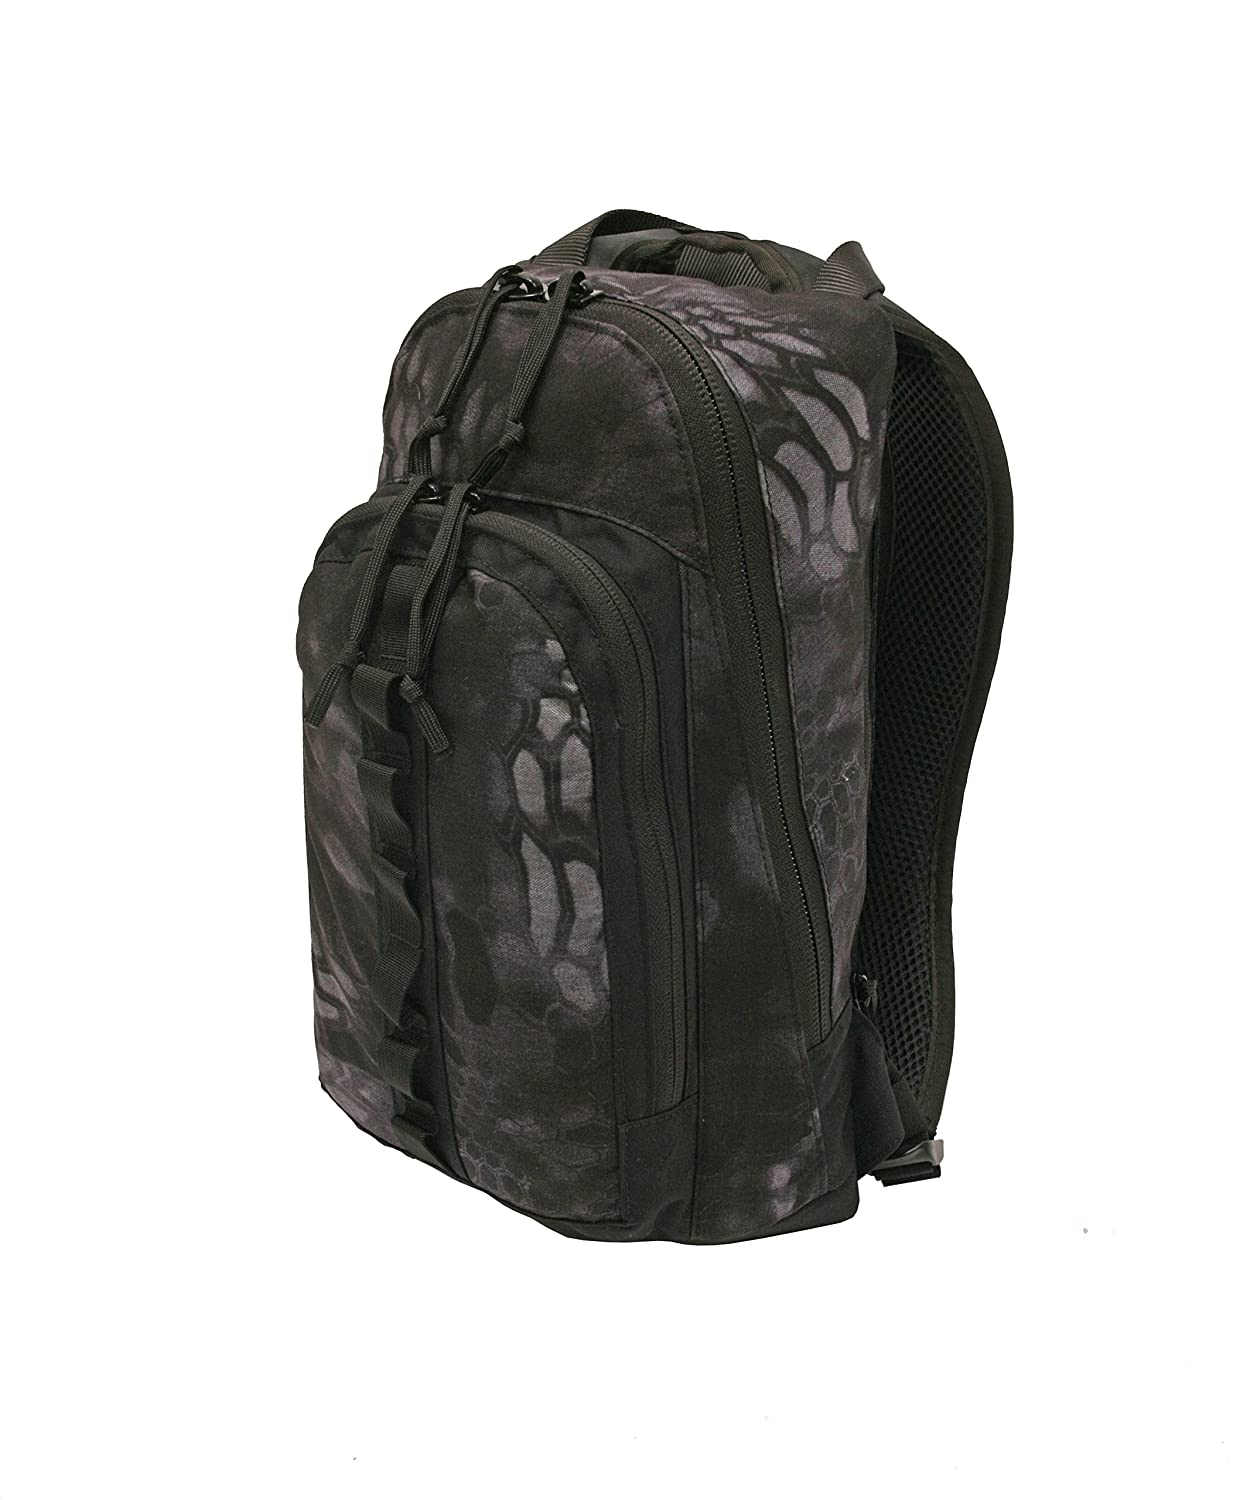 51f41da1b132 Amazon.com   Tactical Tailor Concealed Carry Backpack